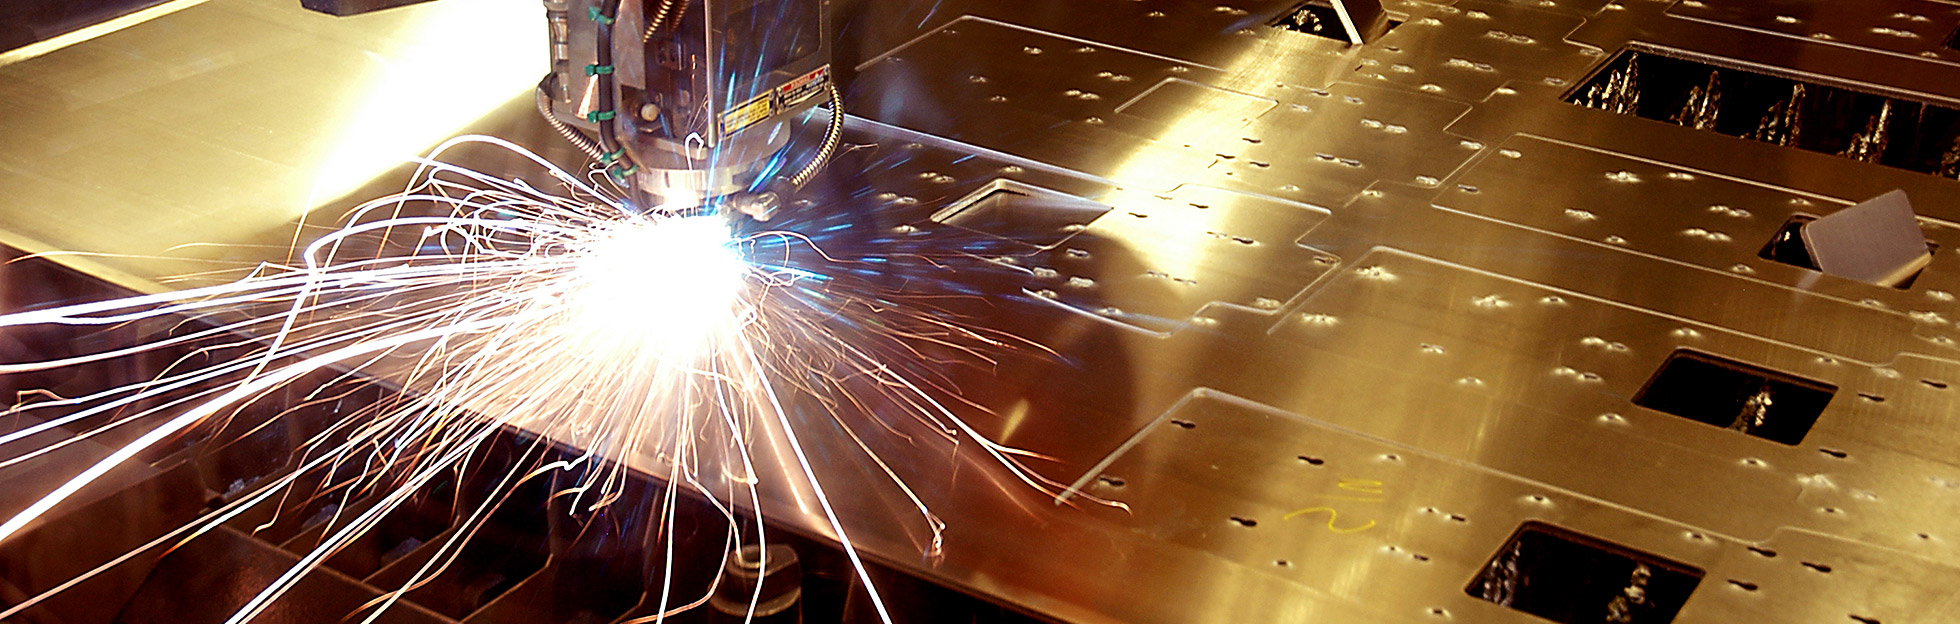 Metal Fabrication, Artistic Alloys, Phoenix AZ